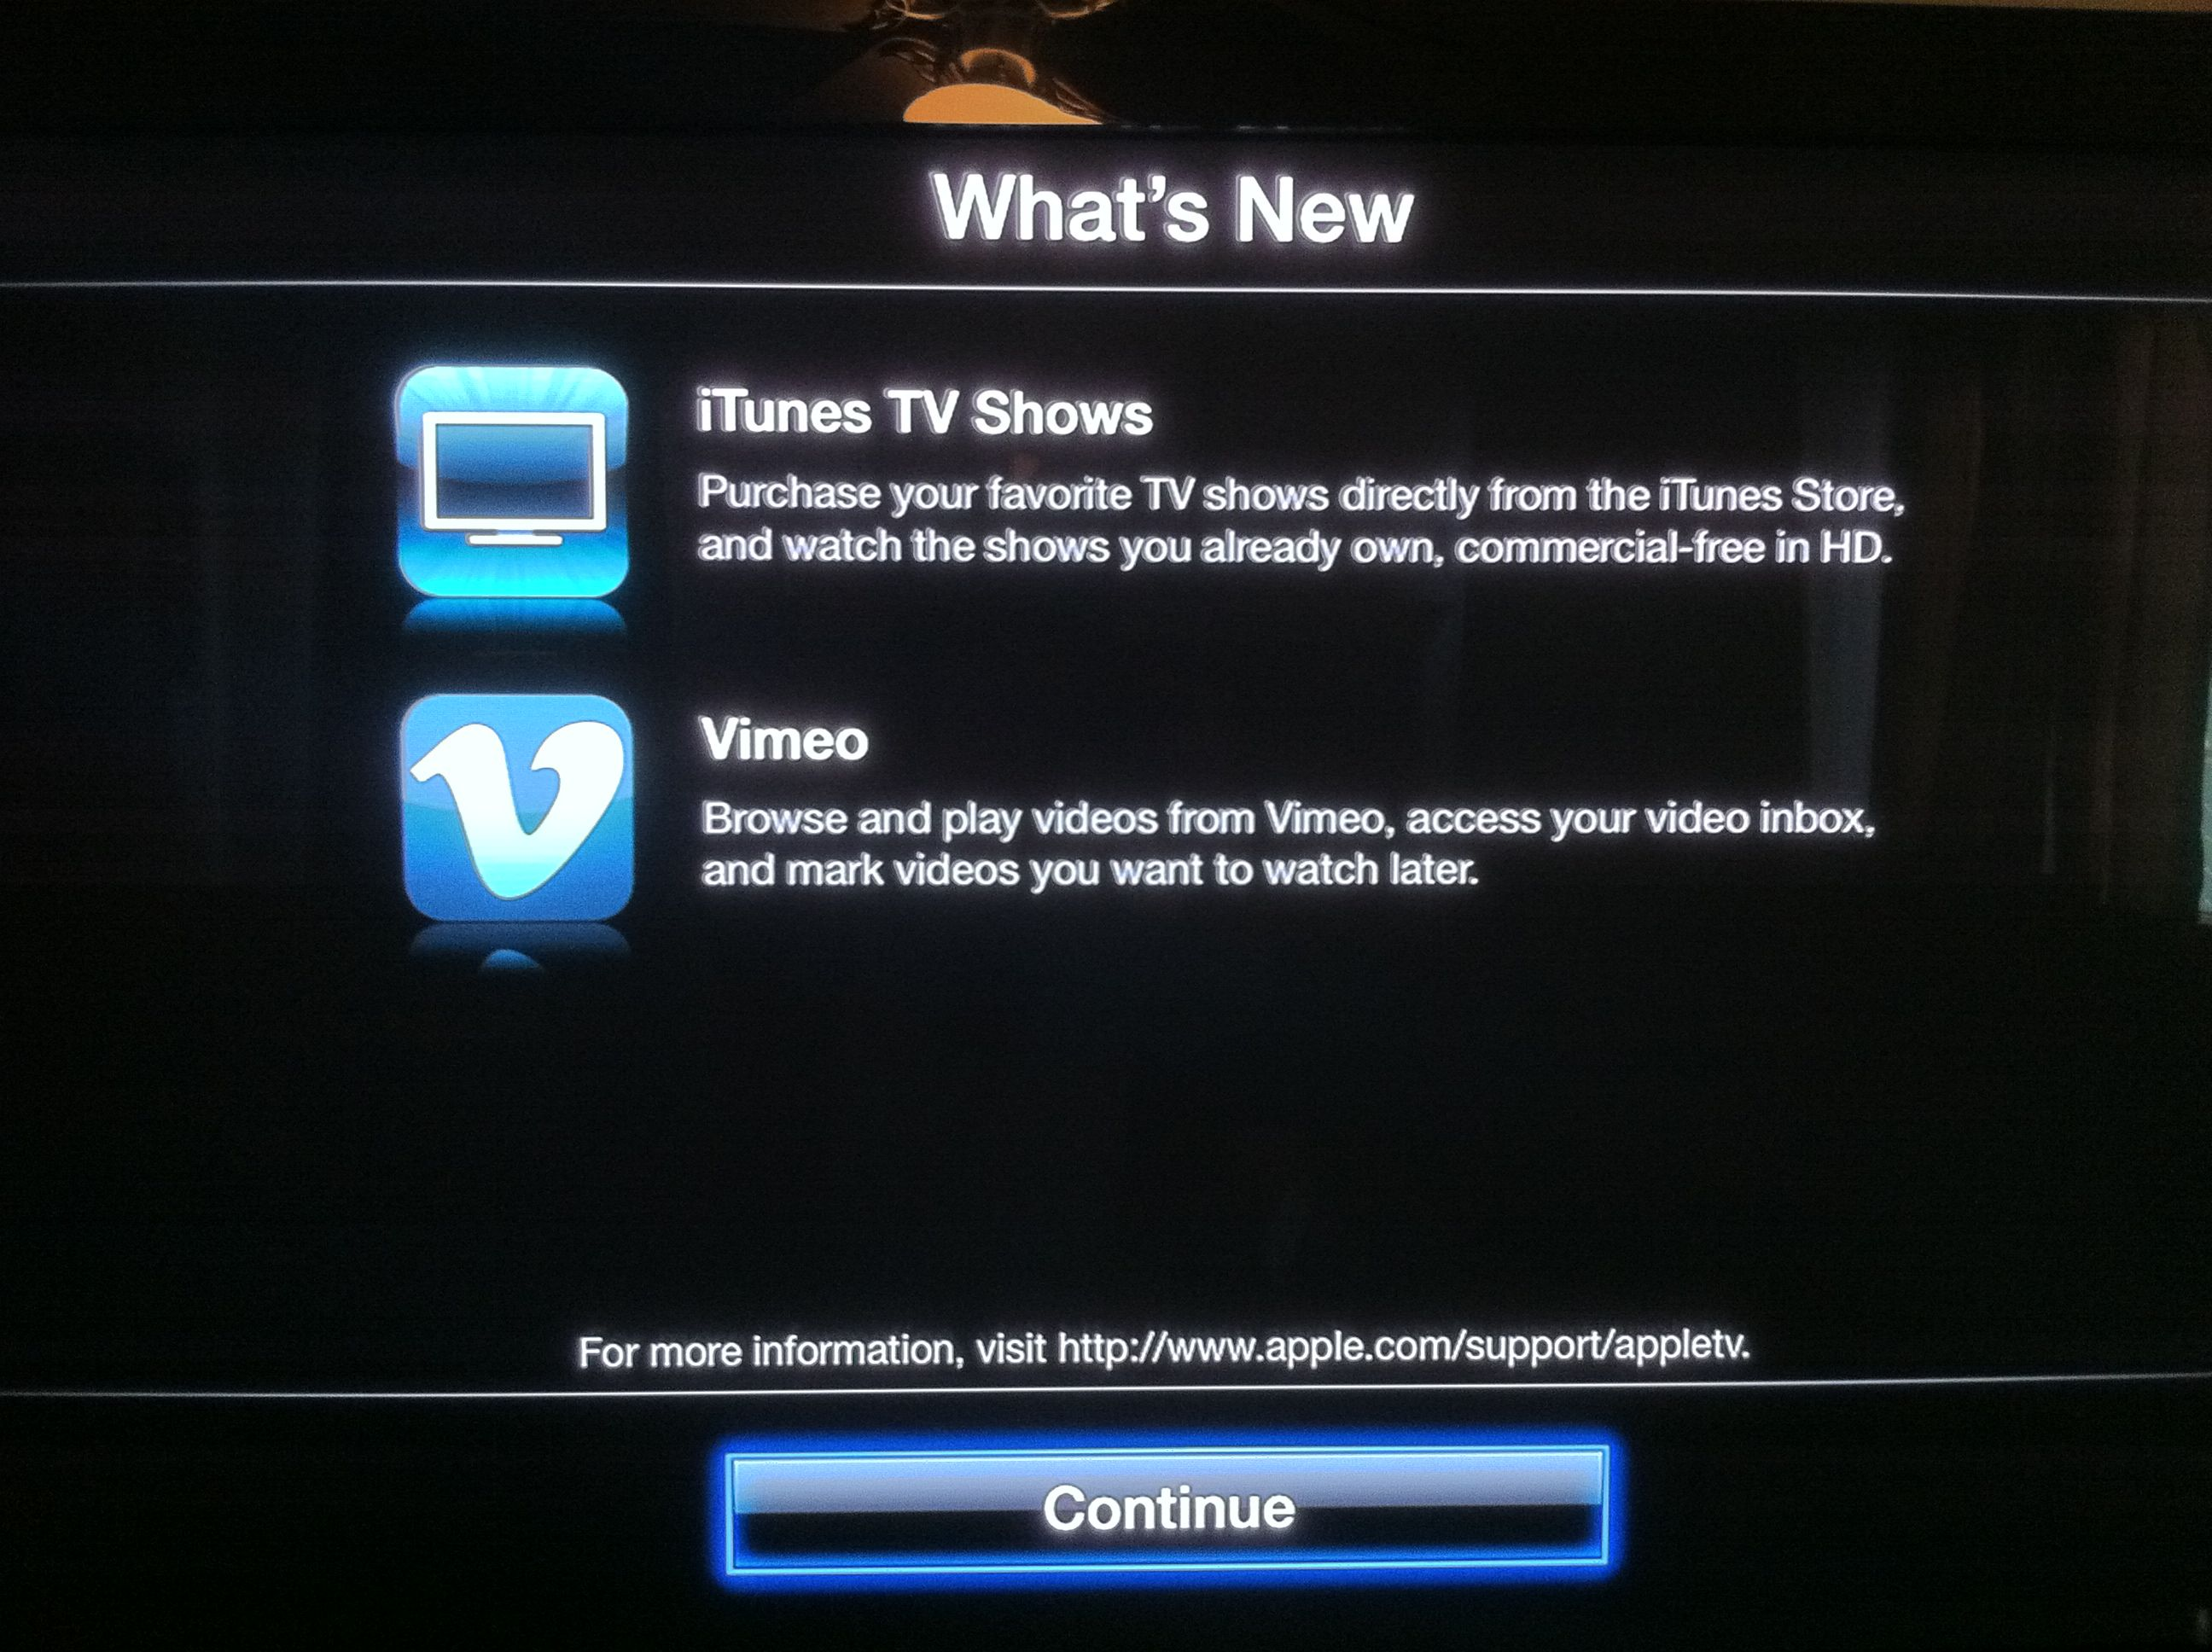 Apple TV iOS 4.3 streams TV shows from iCloud, now supports Vimeo